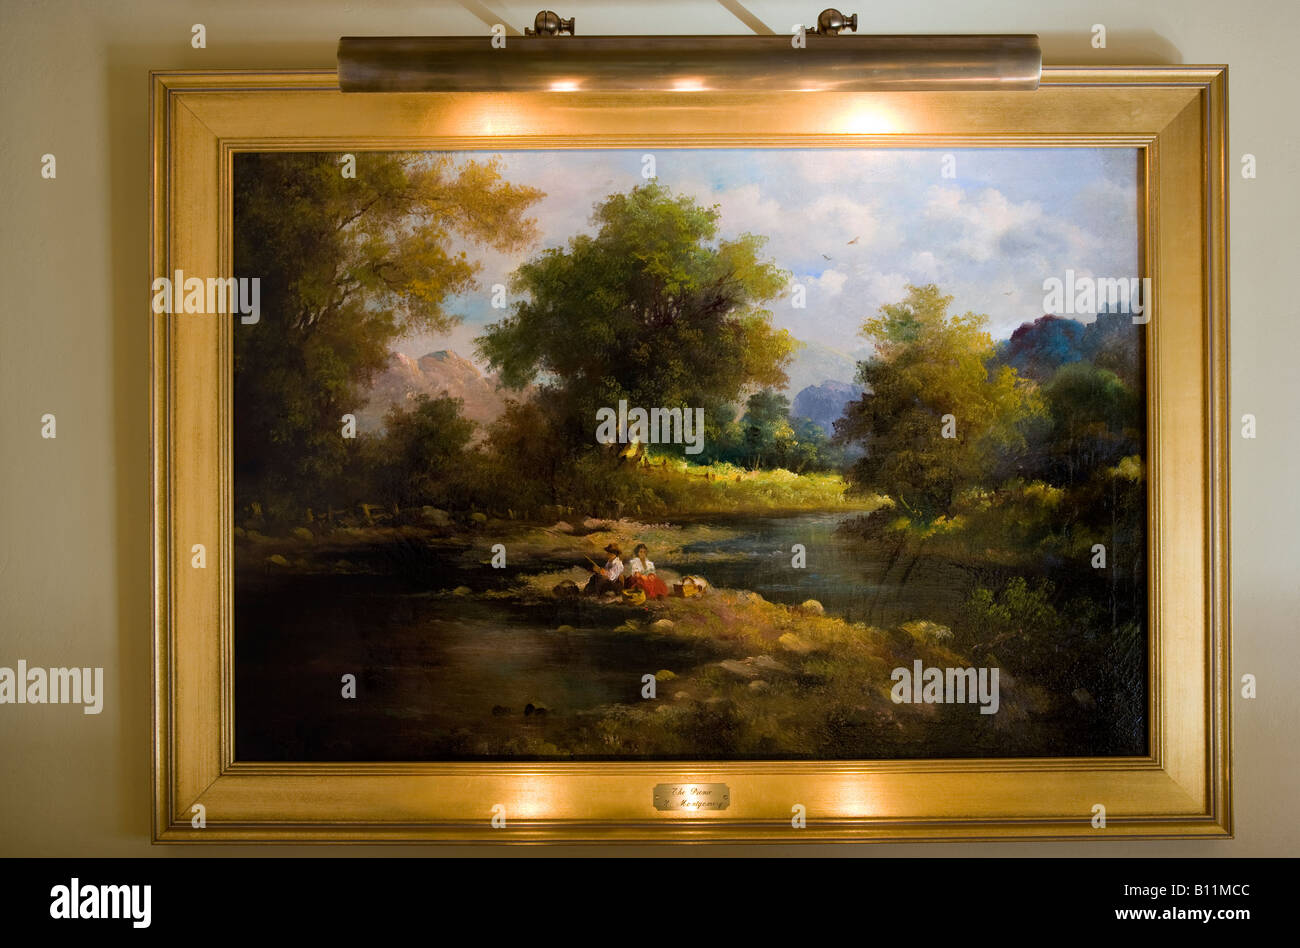 Landscape Oil Painting Hanging On Wall In Home Stock Photo 17863004